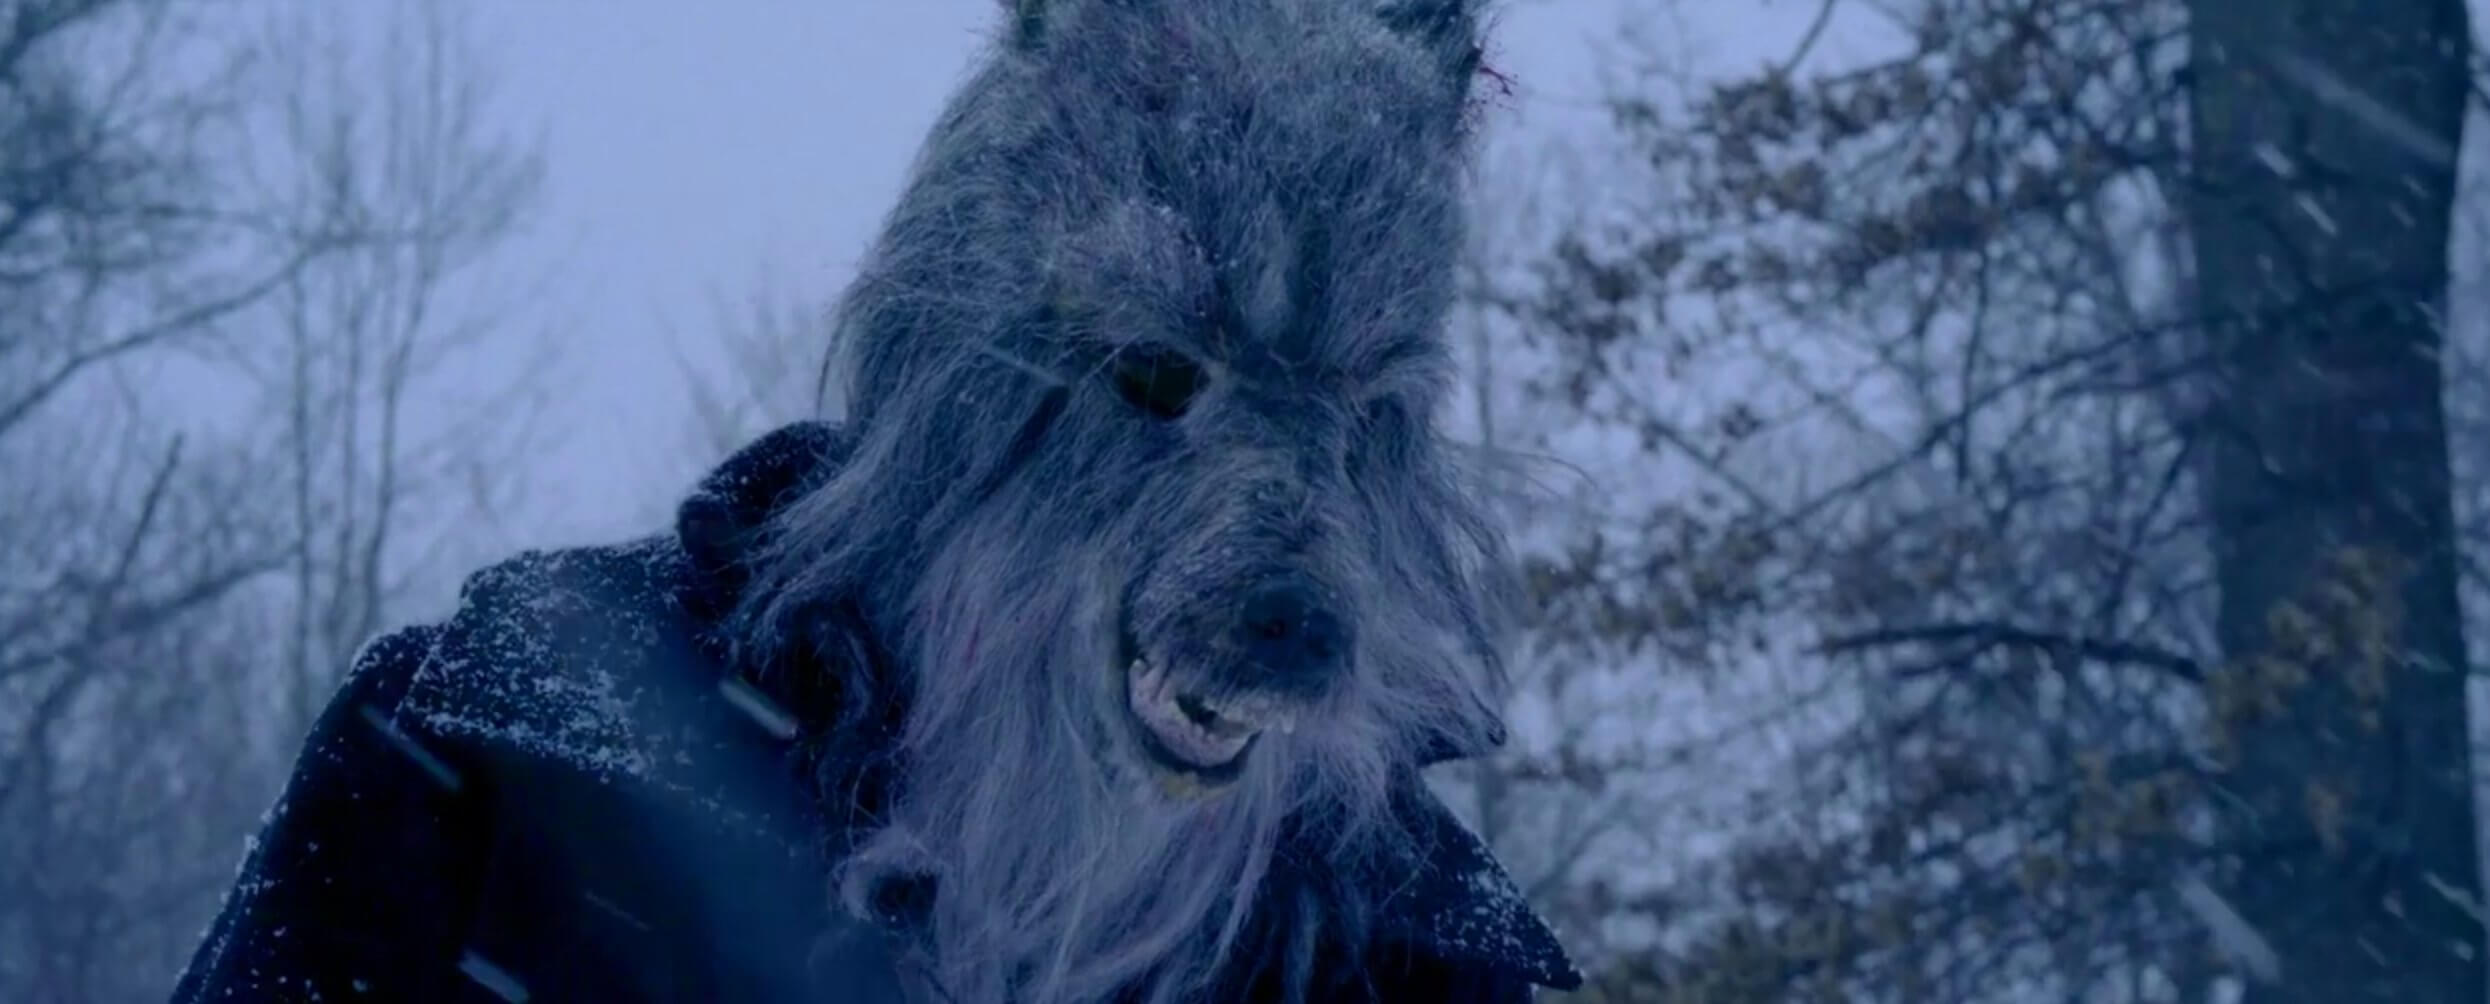 The Wolf Family Treasure wolf snow 1 - A Trailer Searches for The Wolf Family Treasure